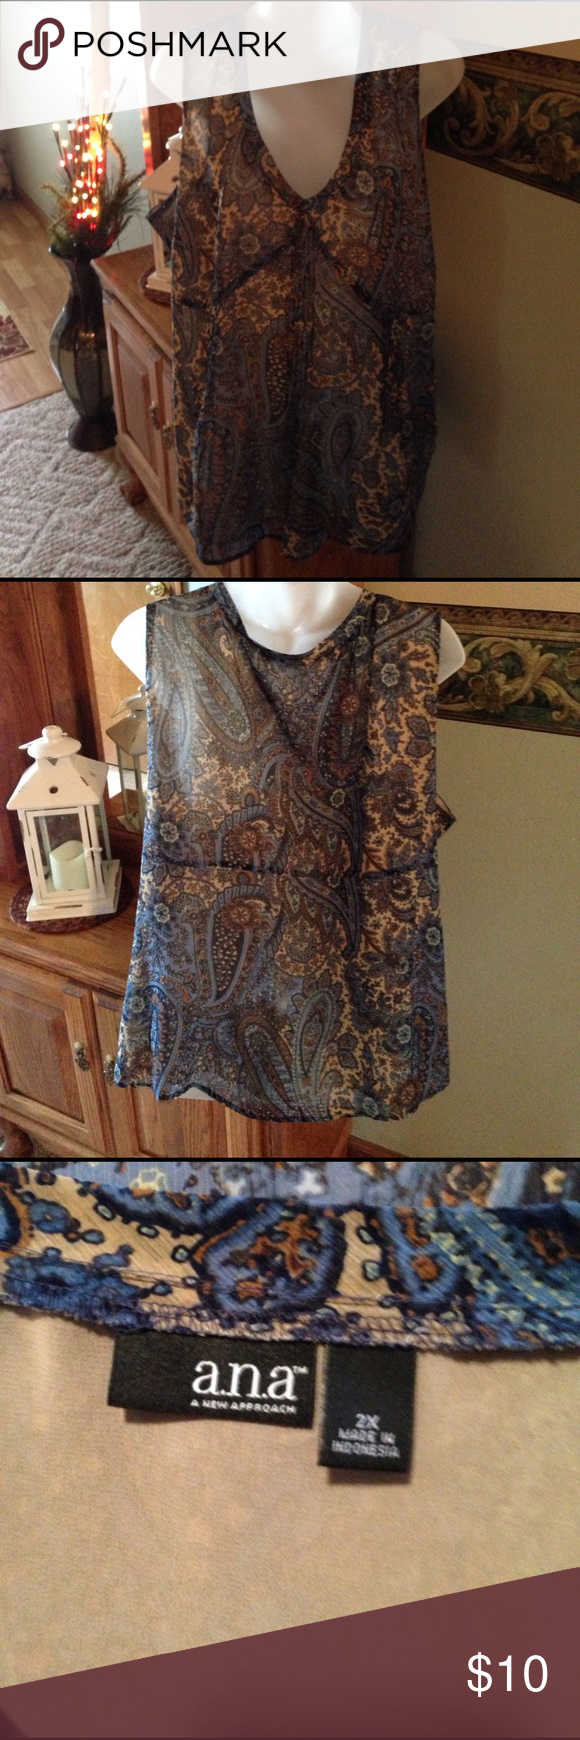 a.n.a. A New Approach Top a.n.a. A New Approach Women's Plus Size 2X Top. Zips up side. 100% Polyester With Lining. Great Preowned Condition. Any questions please ask. Thank You 😊 a.n.a Tops Blouses